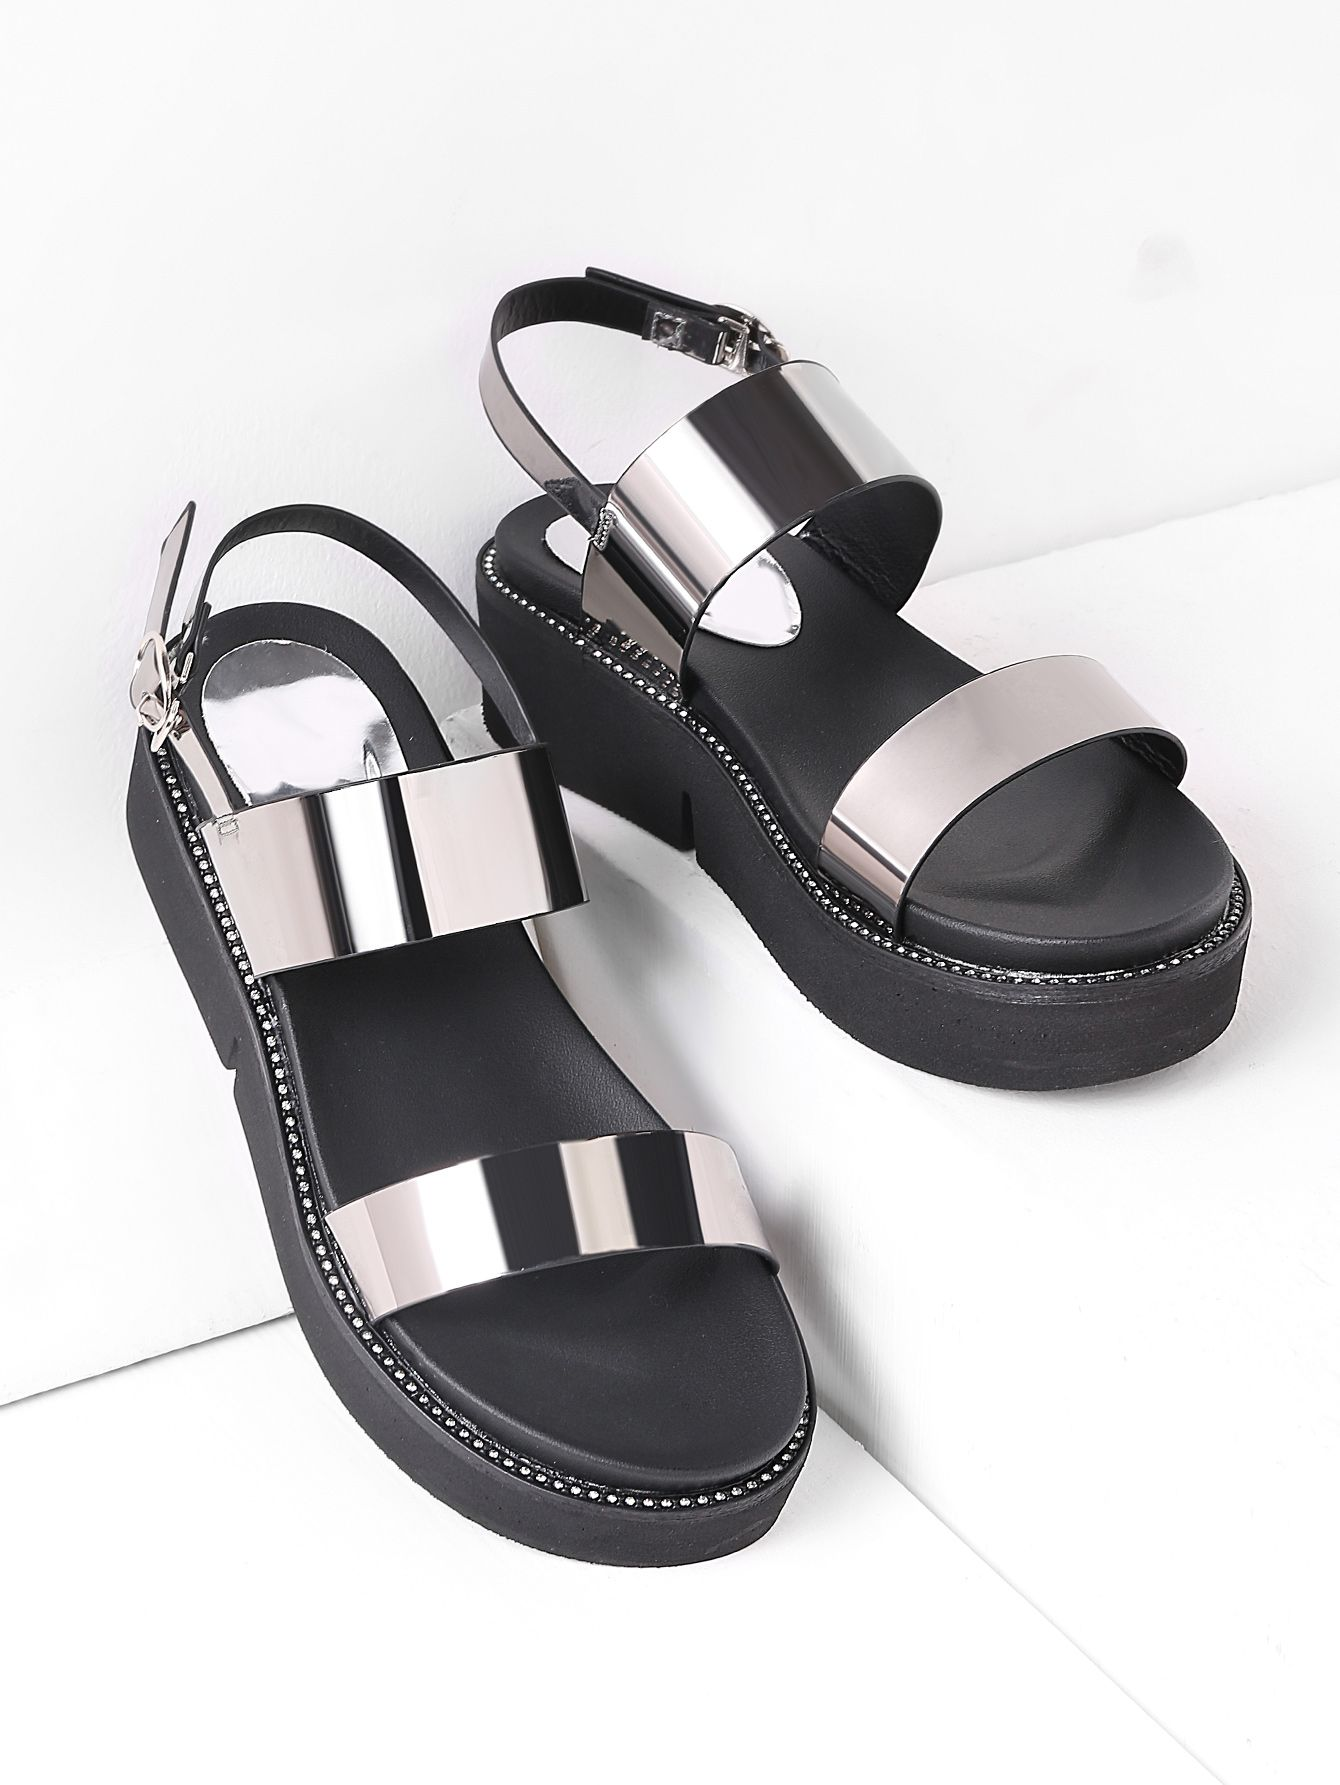 c9b8fa3e5f0807 ... SheIn offers Studded Detail Metallic Patent Leather Flatform Sandals  more to fit your fashionable needs.